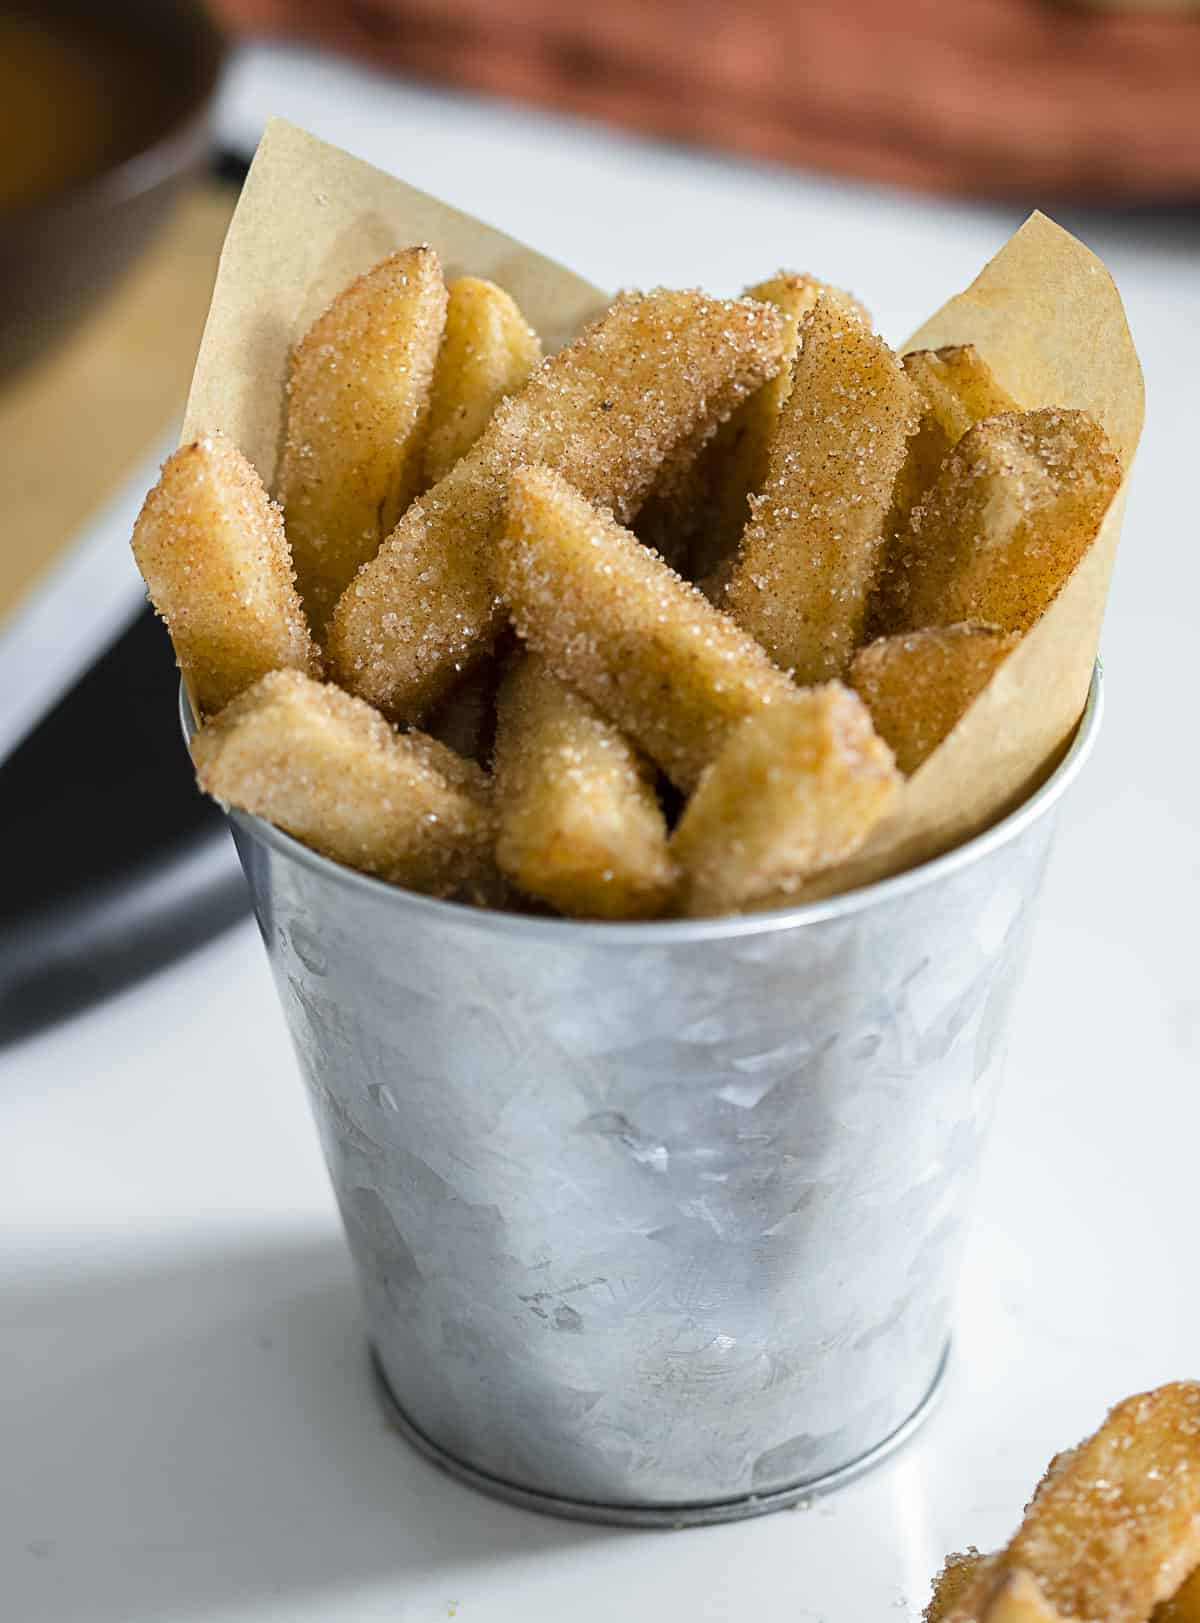 Cinnamon sugar fried apple fries in a cup on table.